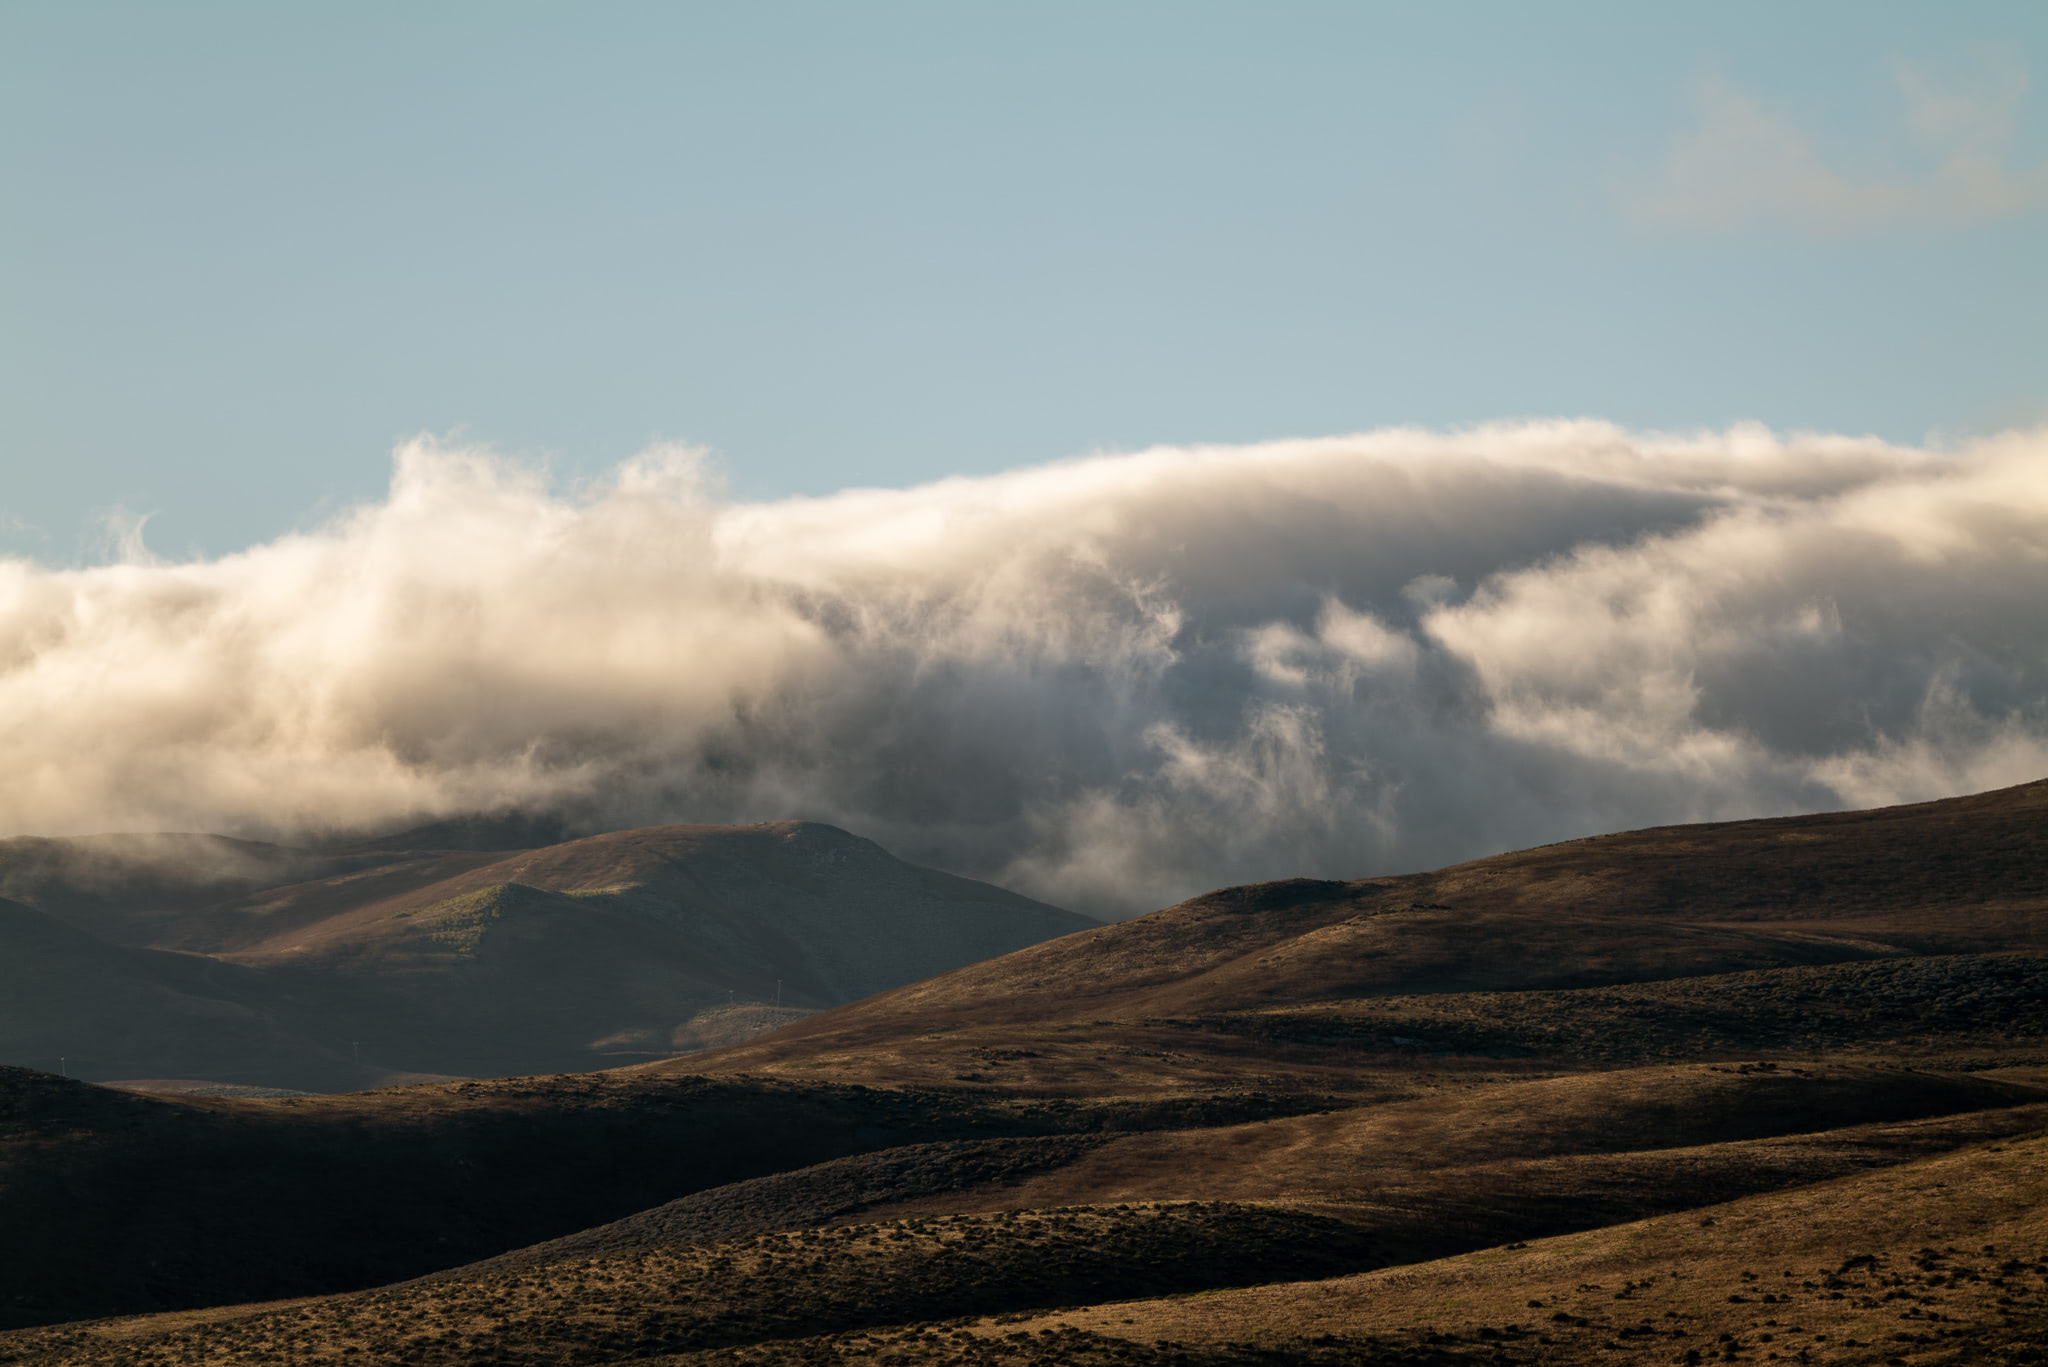 Clouds rolling over the mountains just South of Vandenberg Air Force Base